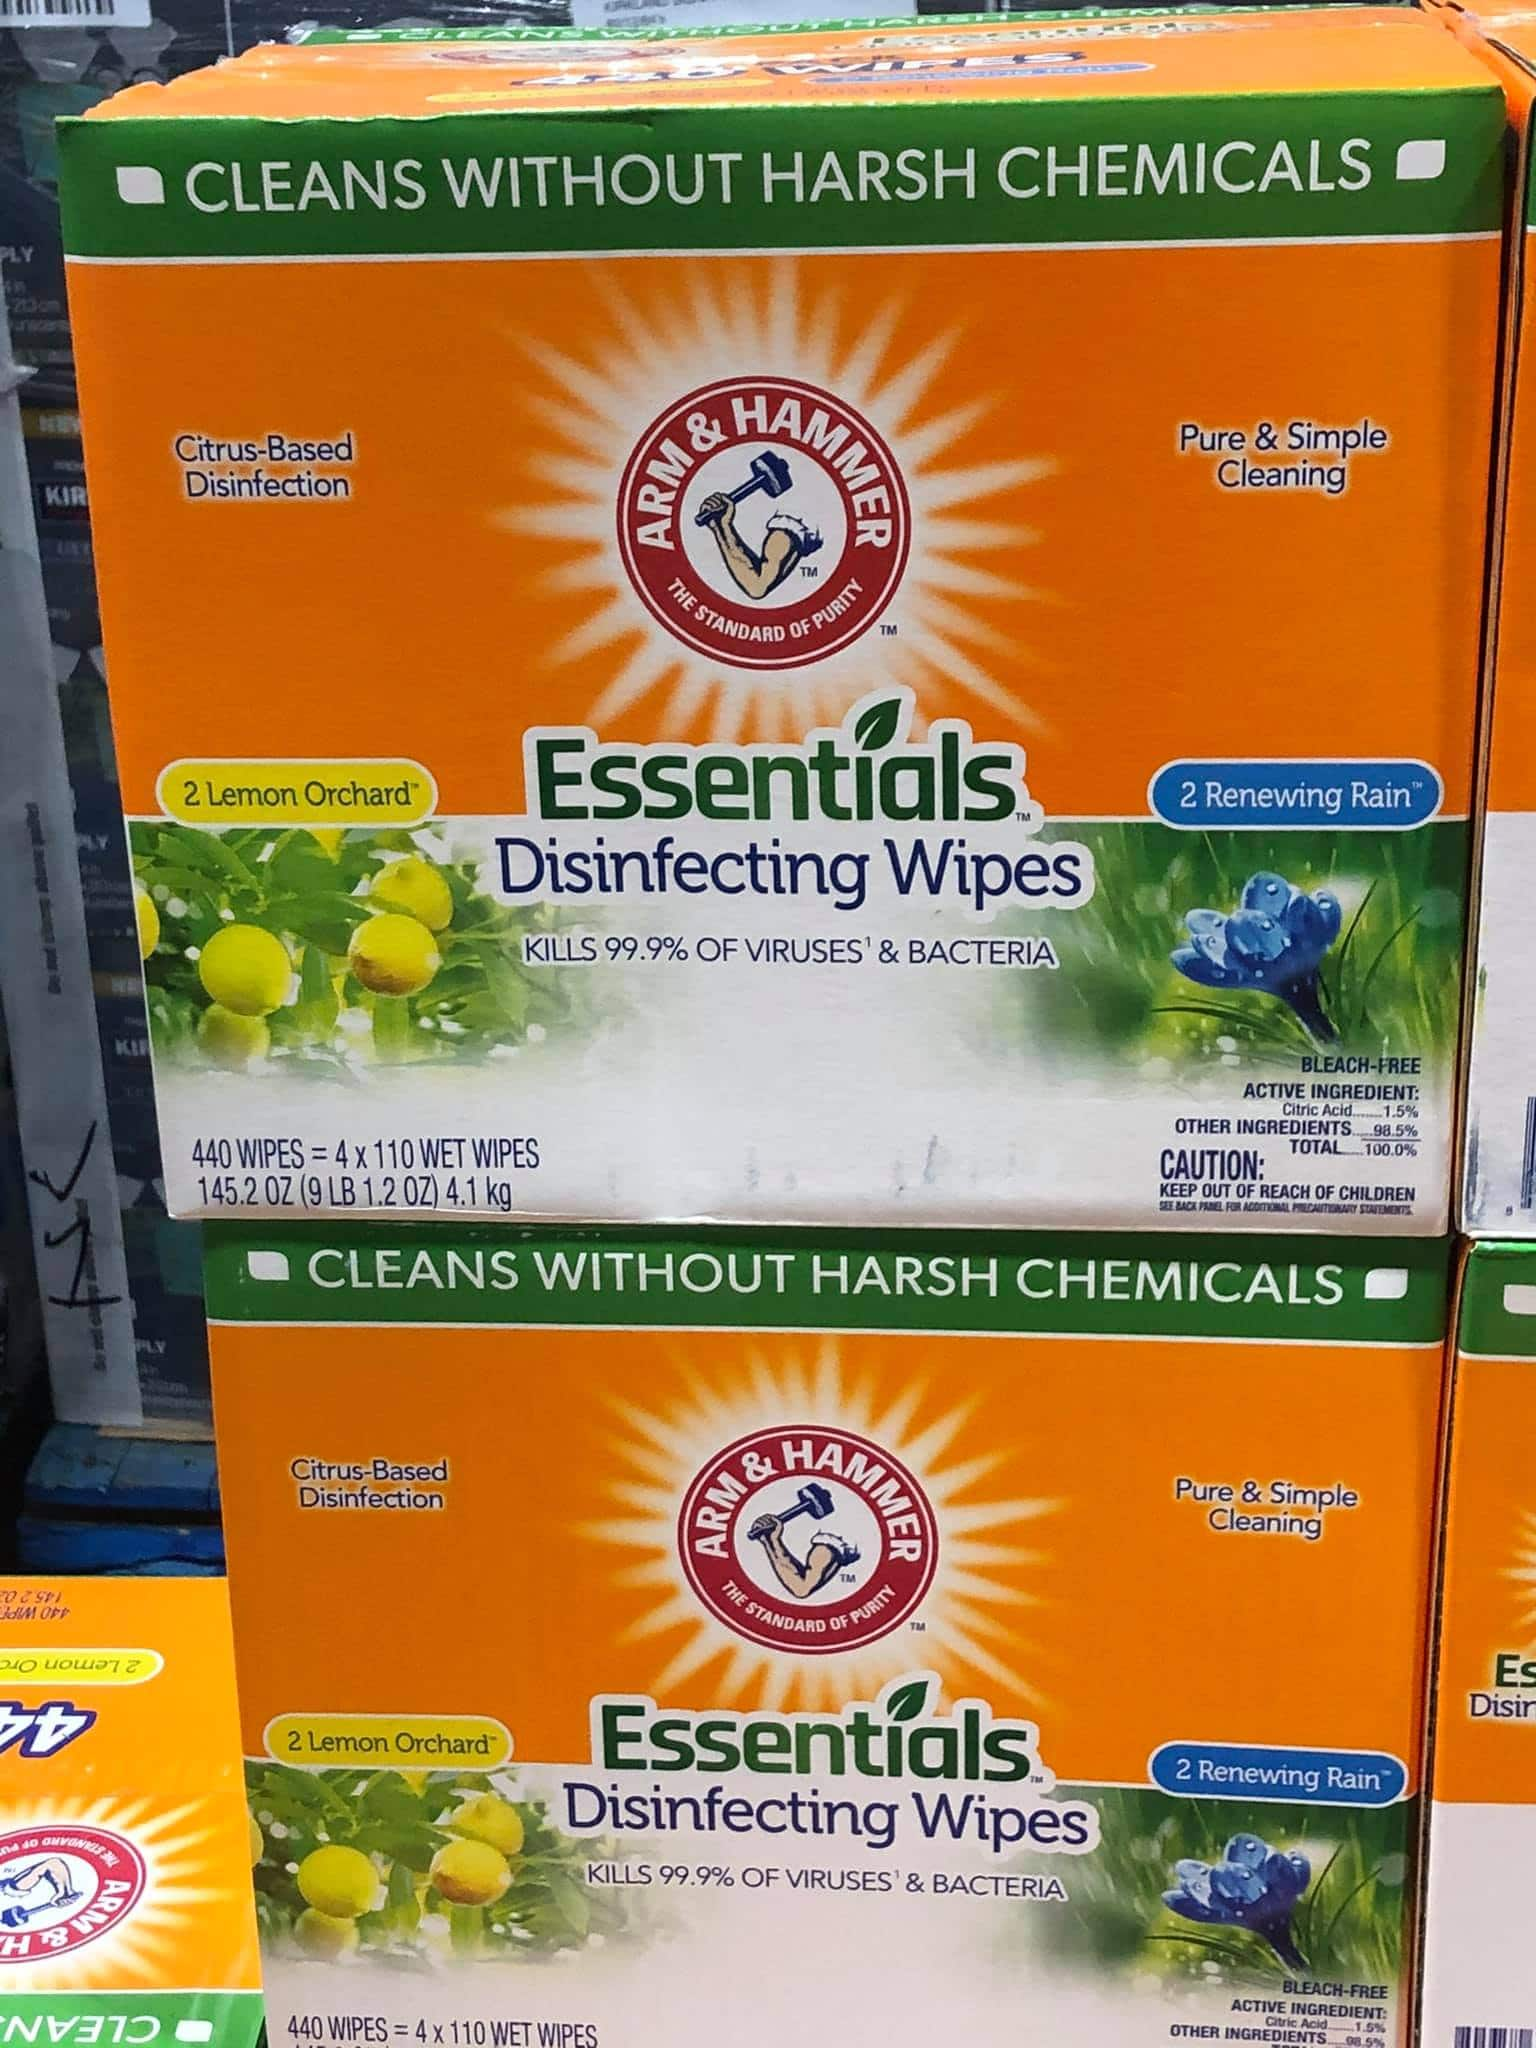 New Arm & Hammer Disinfecting Wipes at Costco